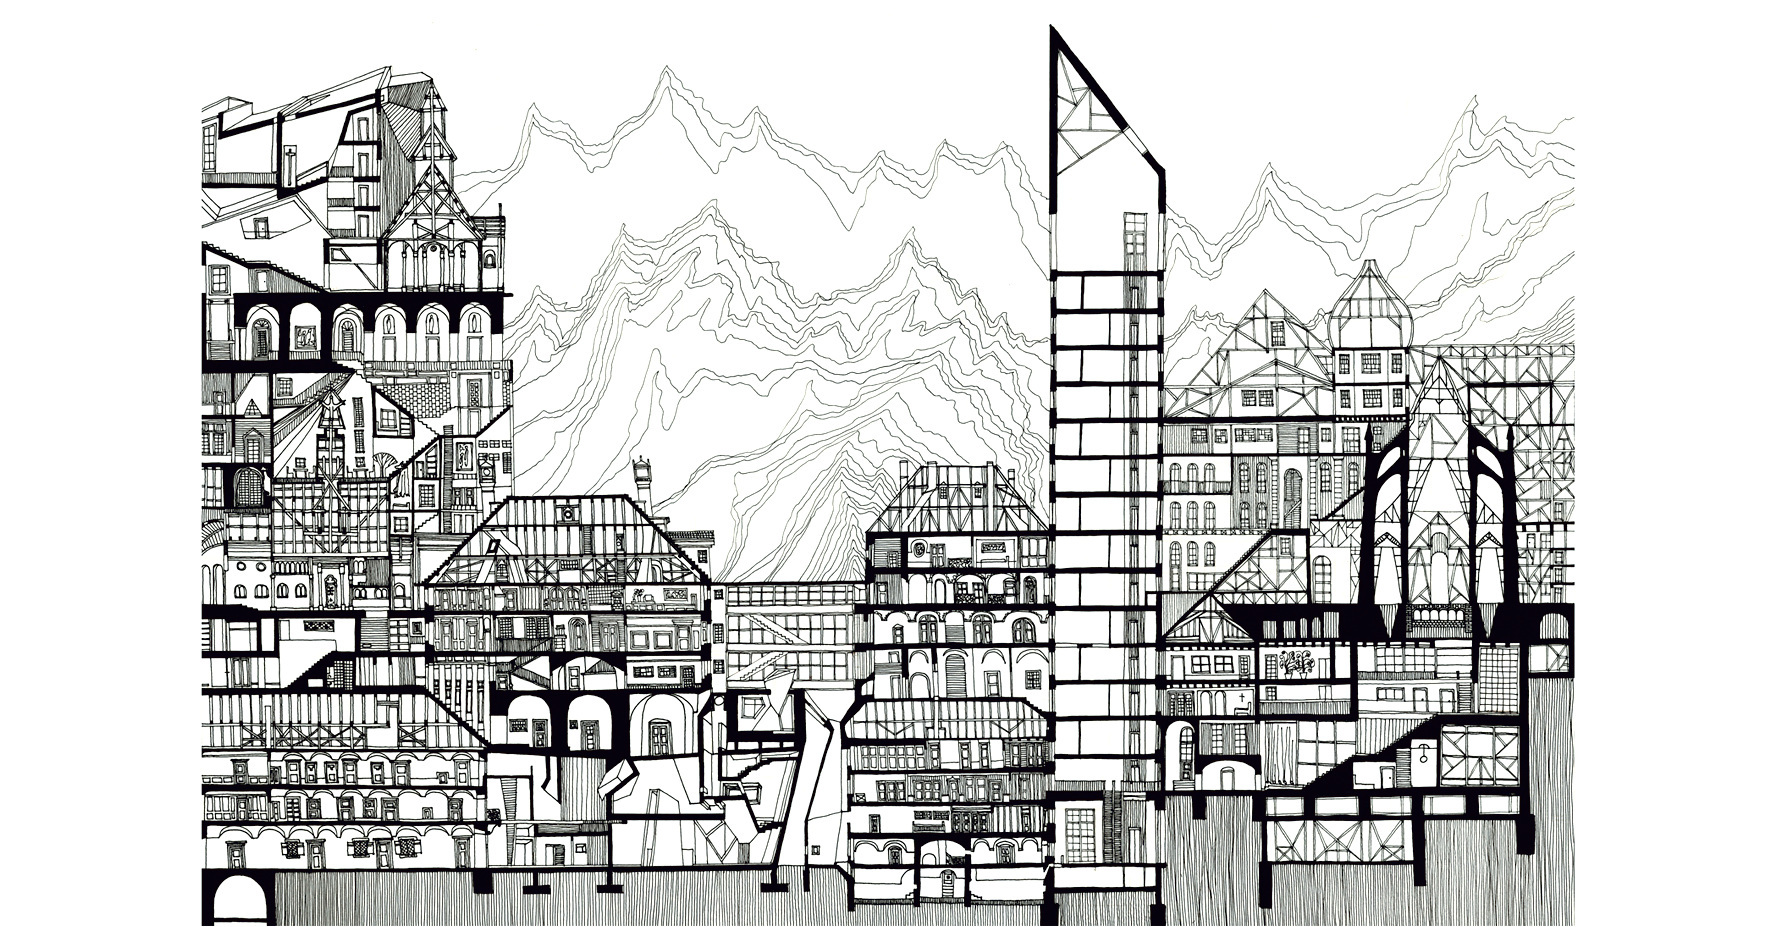 Simple Line Art Example : 画城市地图,绘城市密度 archdaily